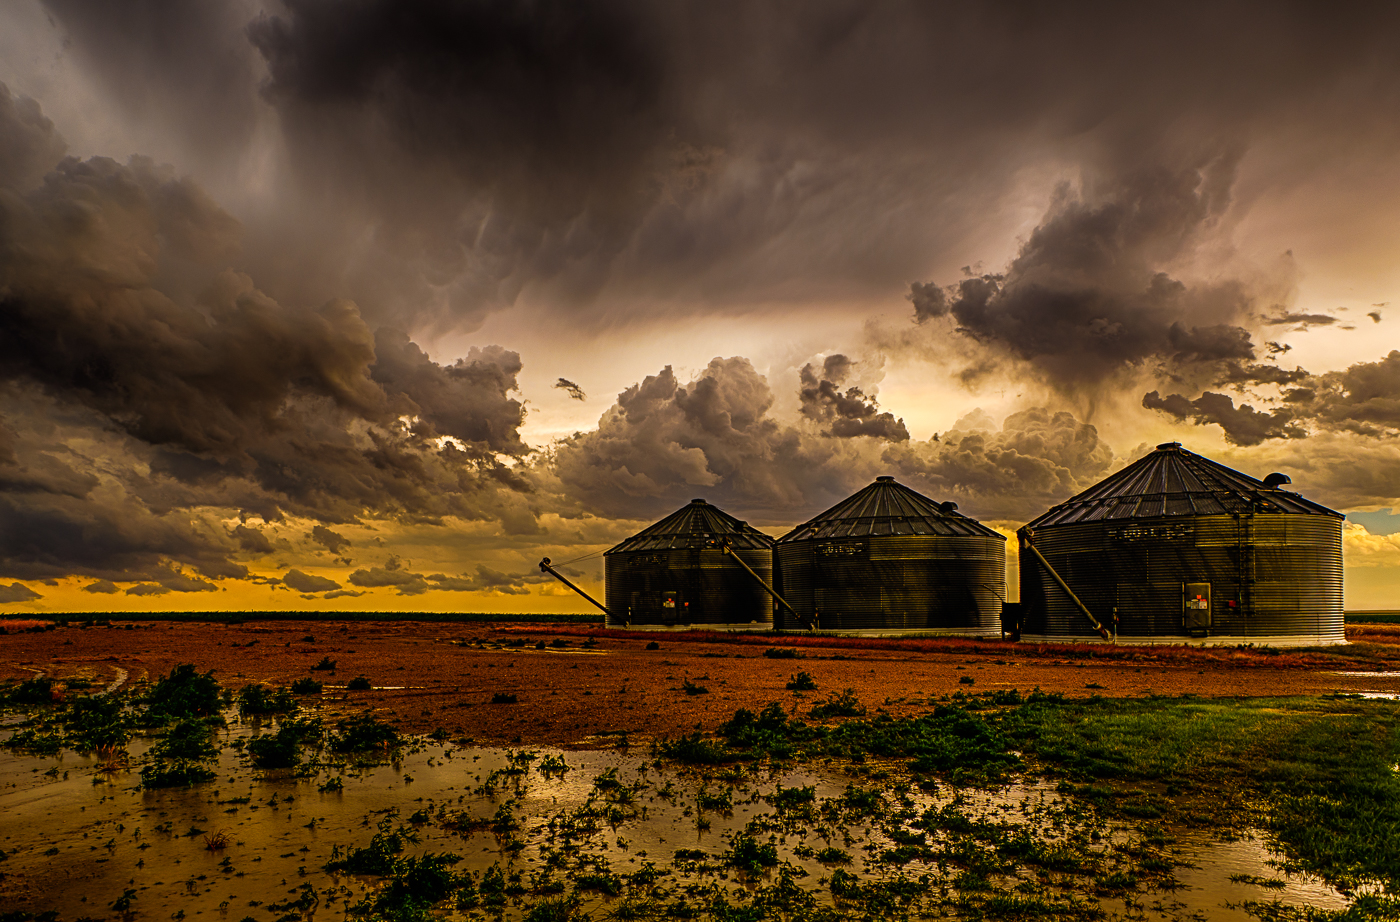 Grain Bins After the Storm